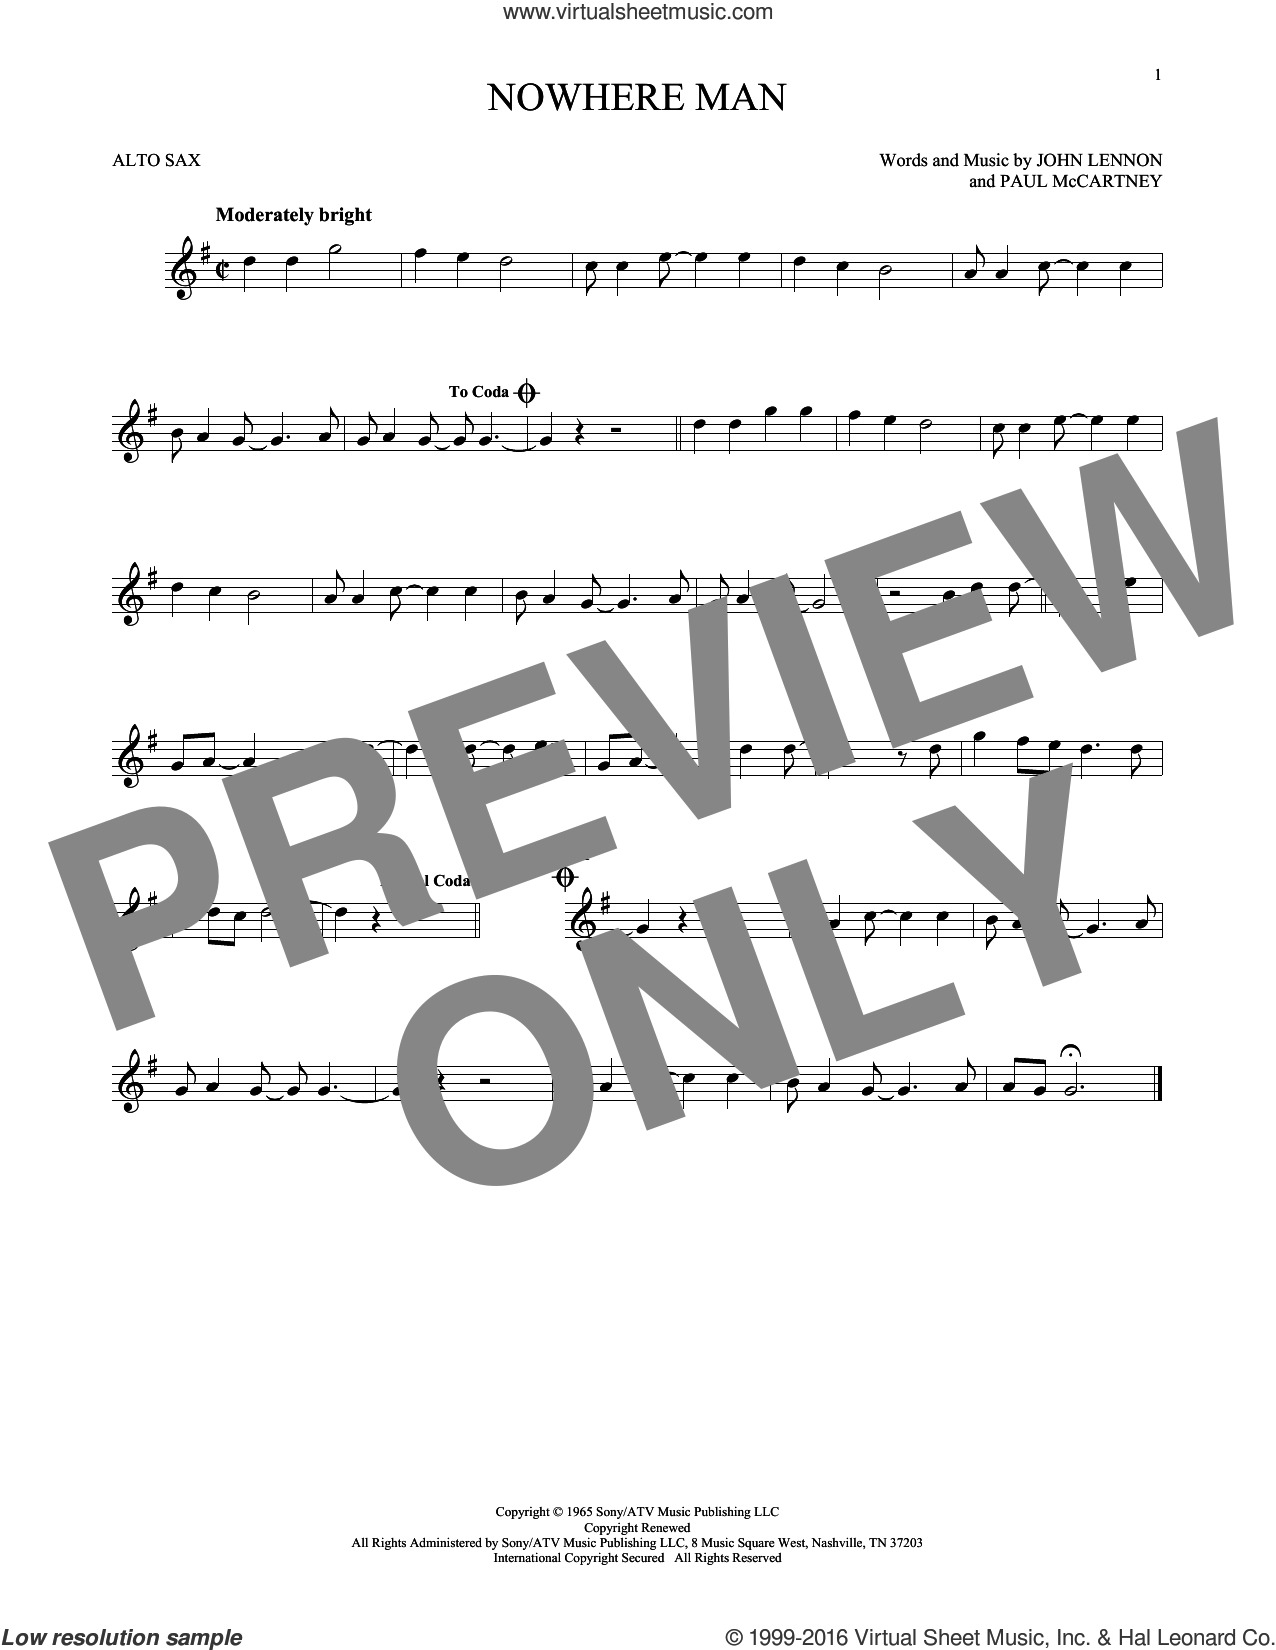 Nowhere Man sheet music for alto saxophone solo by Paul McCartney, The Beatles and John Lennon. Score Image Preview.